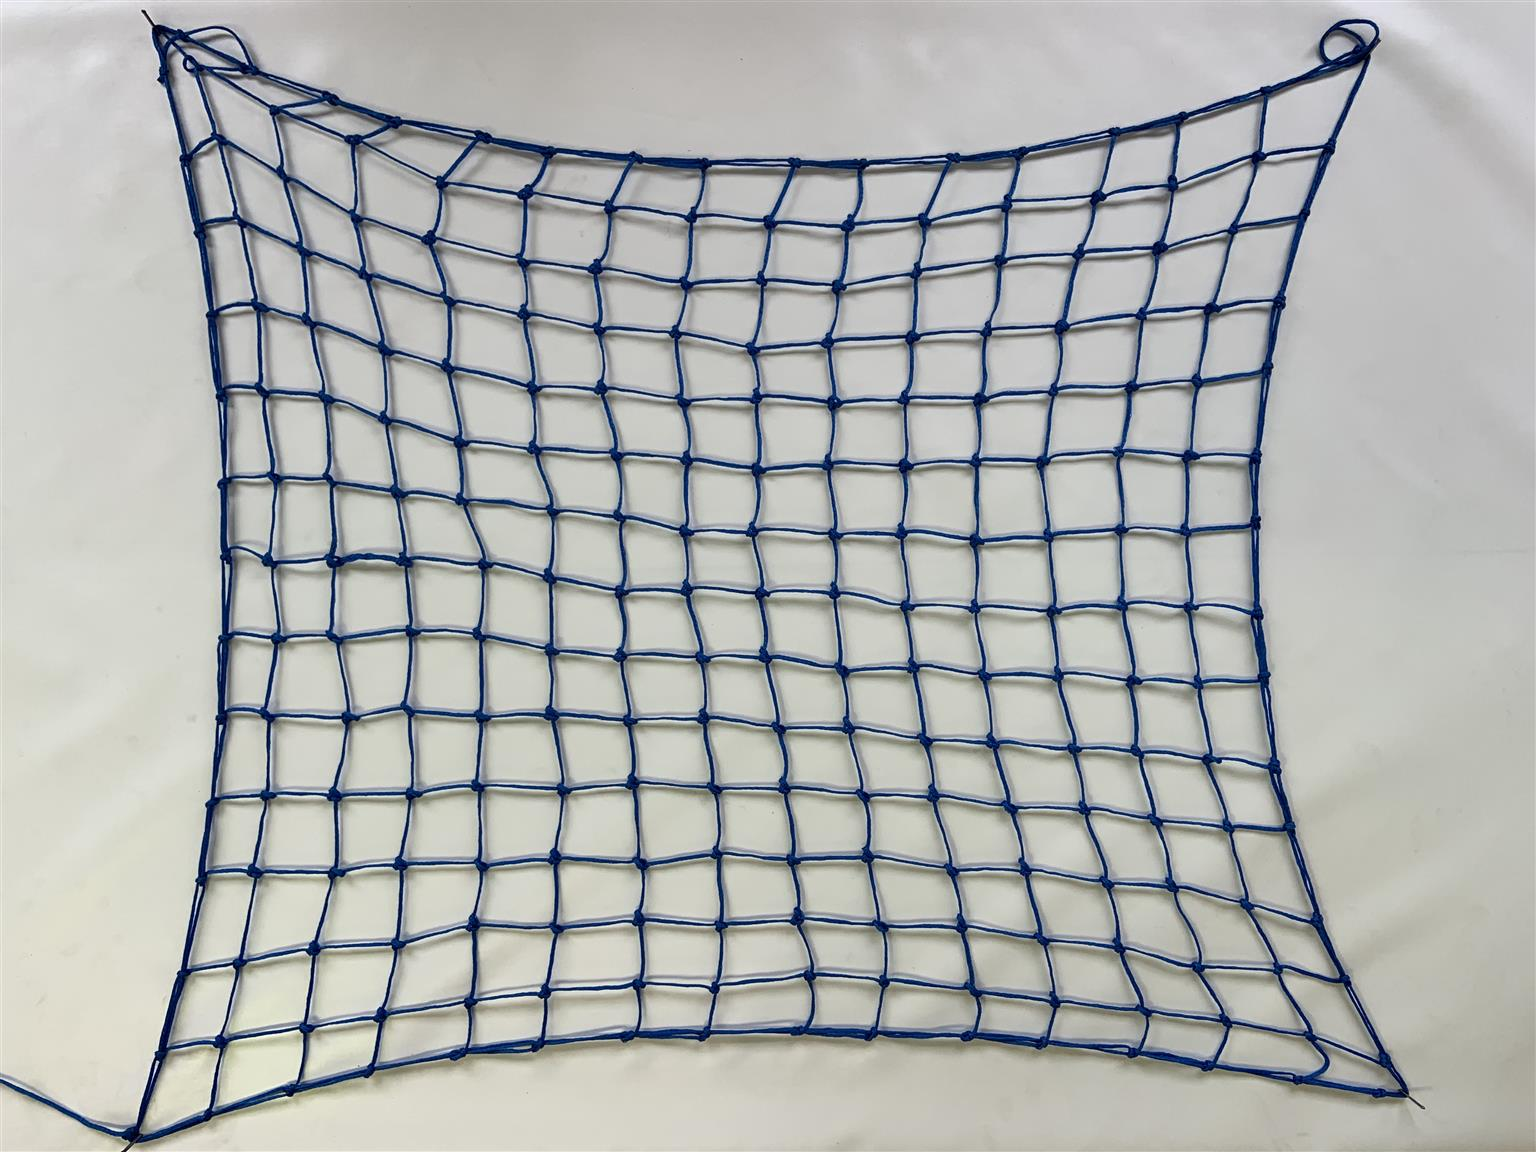 4mX4m Cargo Net for Sale.